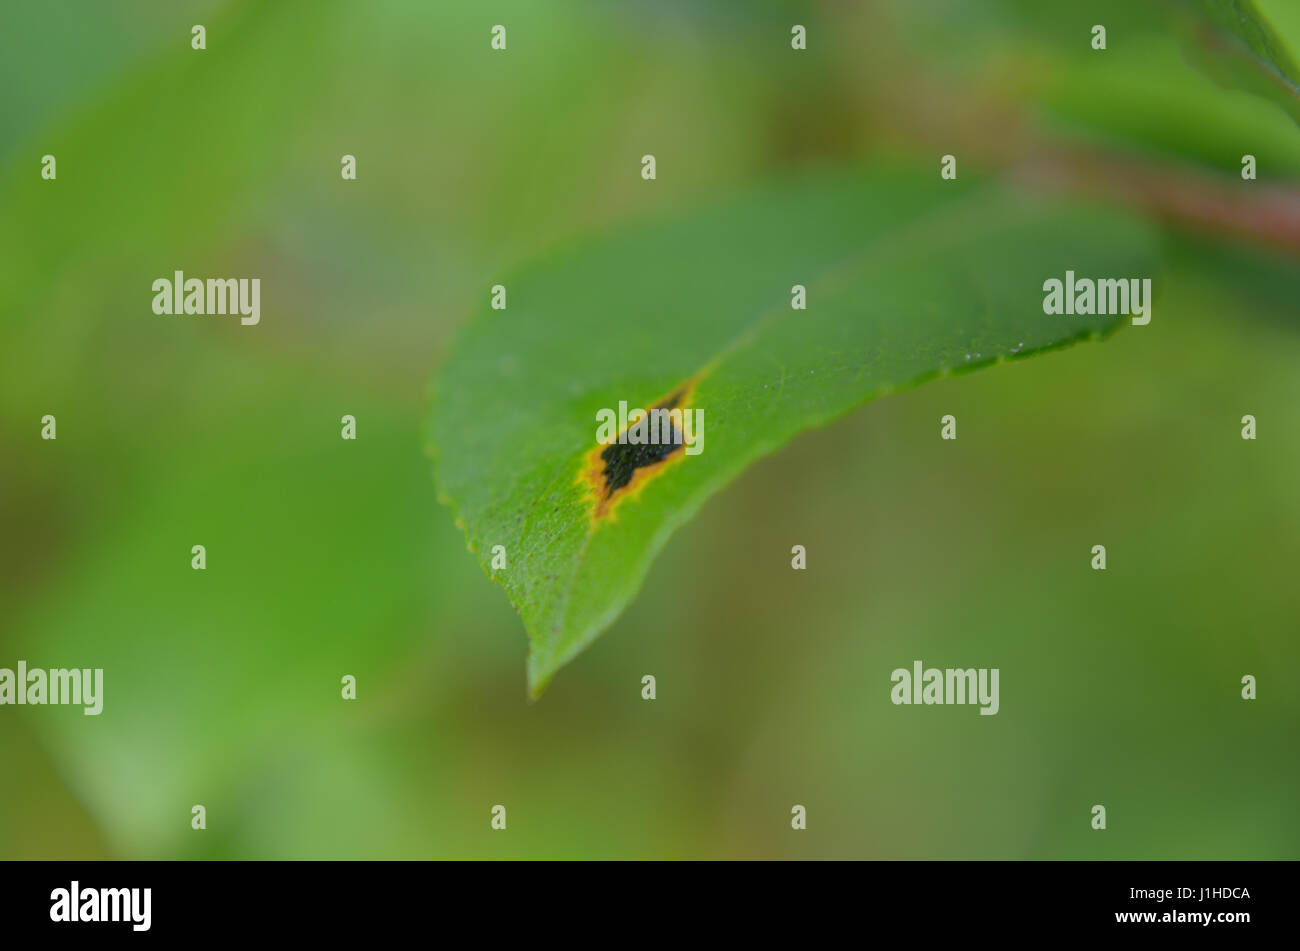 Birch leaf with flamelike mark in selective focus - Stock Image